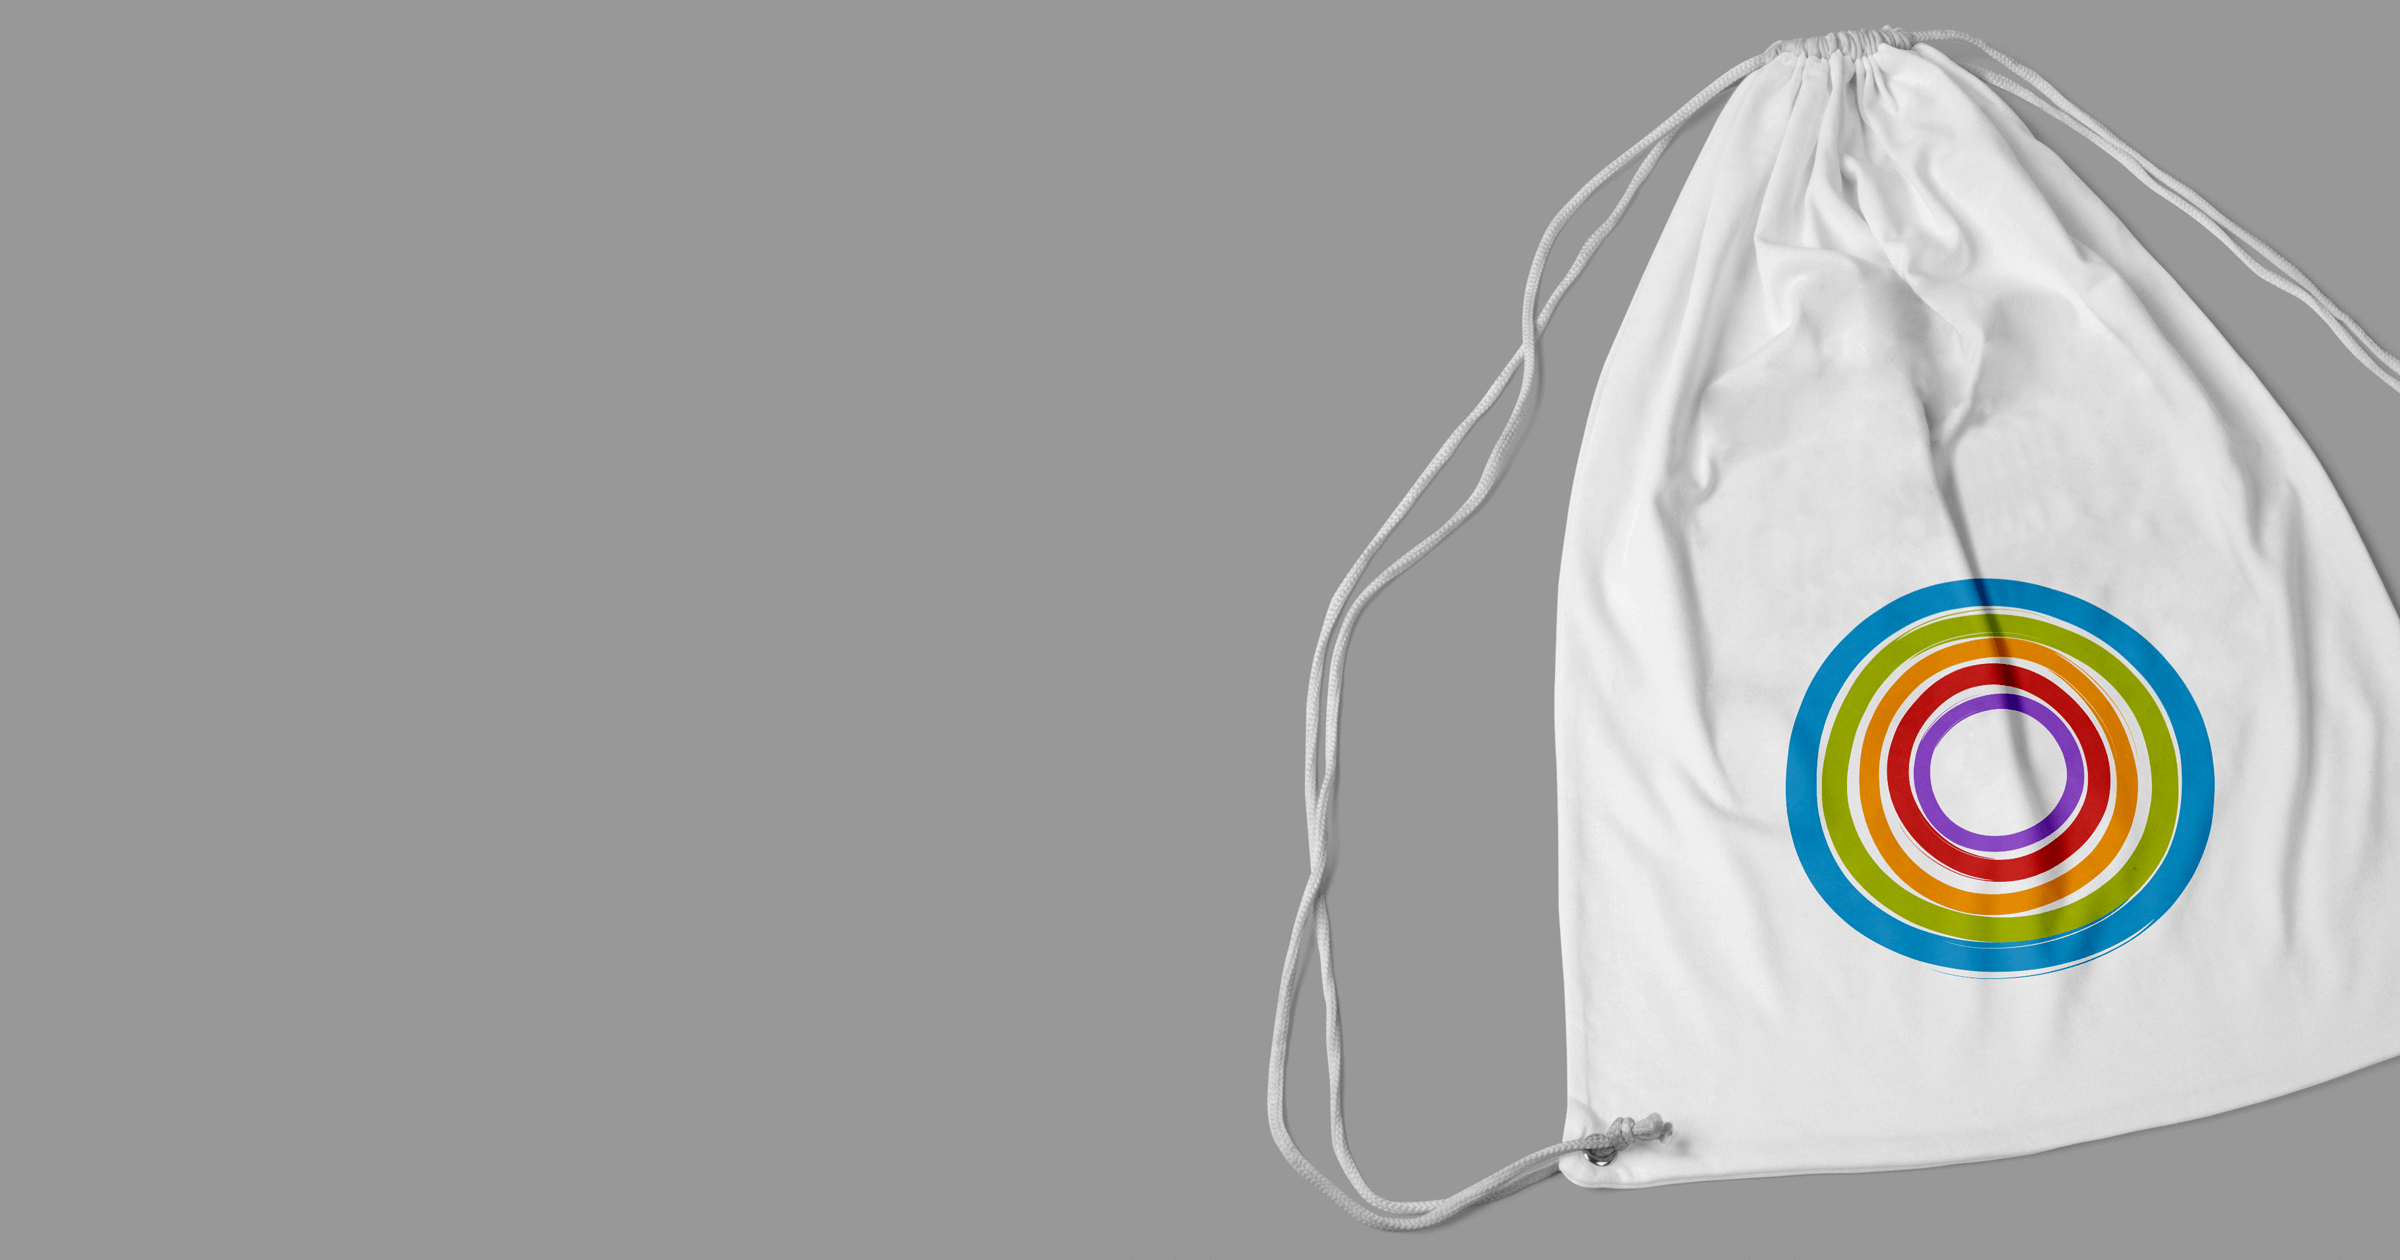 The First School drawstring bag